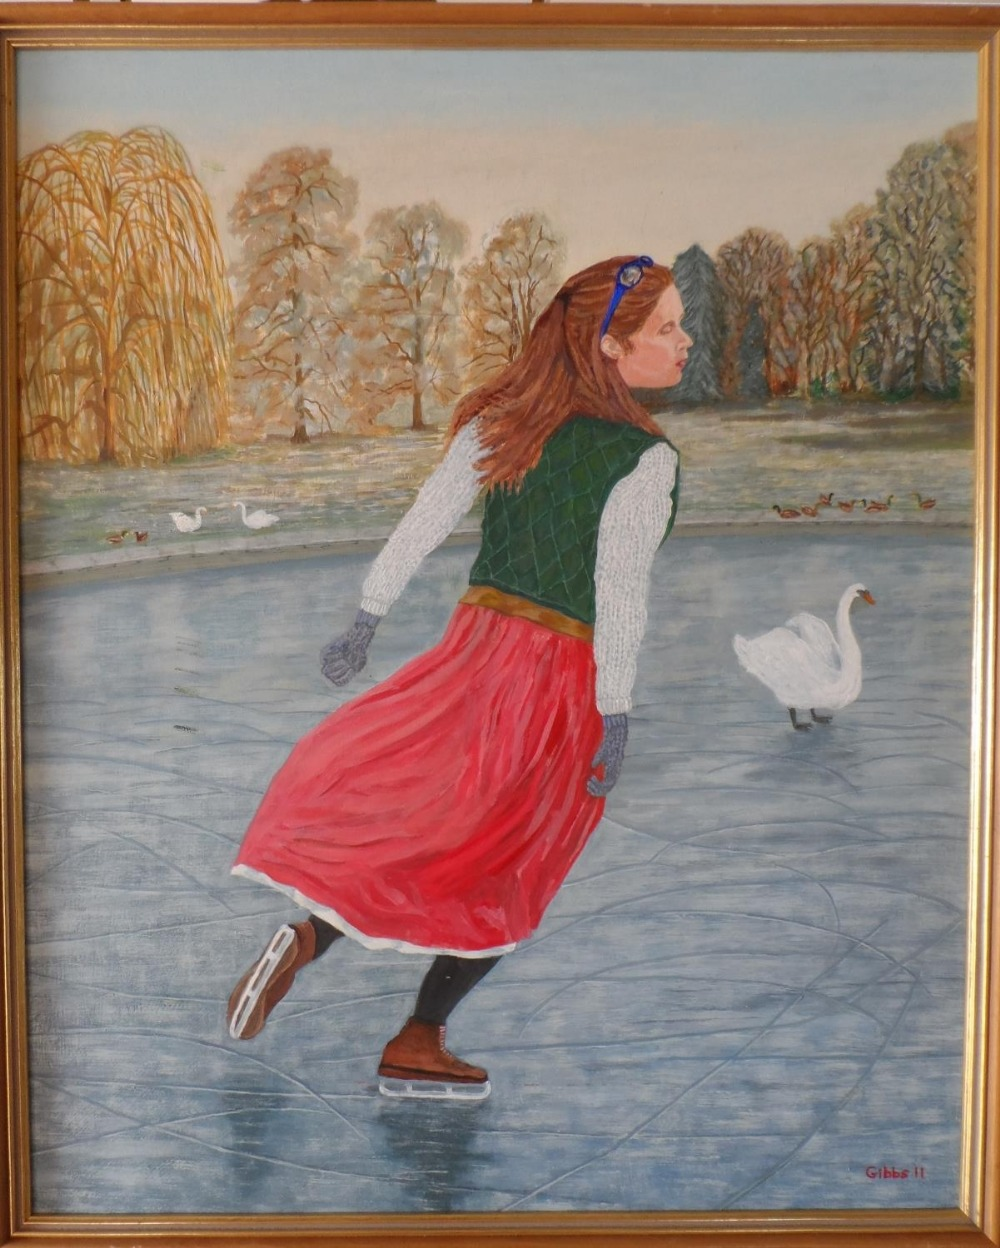 """Gerry Gibbs 2011 oil on board, """"The lone skater"""", wood framed, signed and dated, The oil measures 58 - Image 2 of 5"""